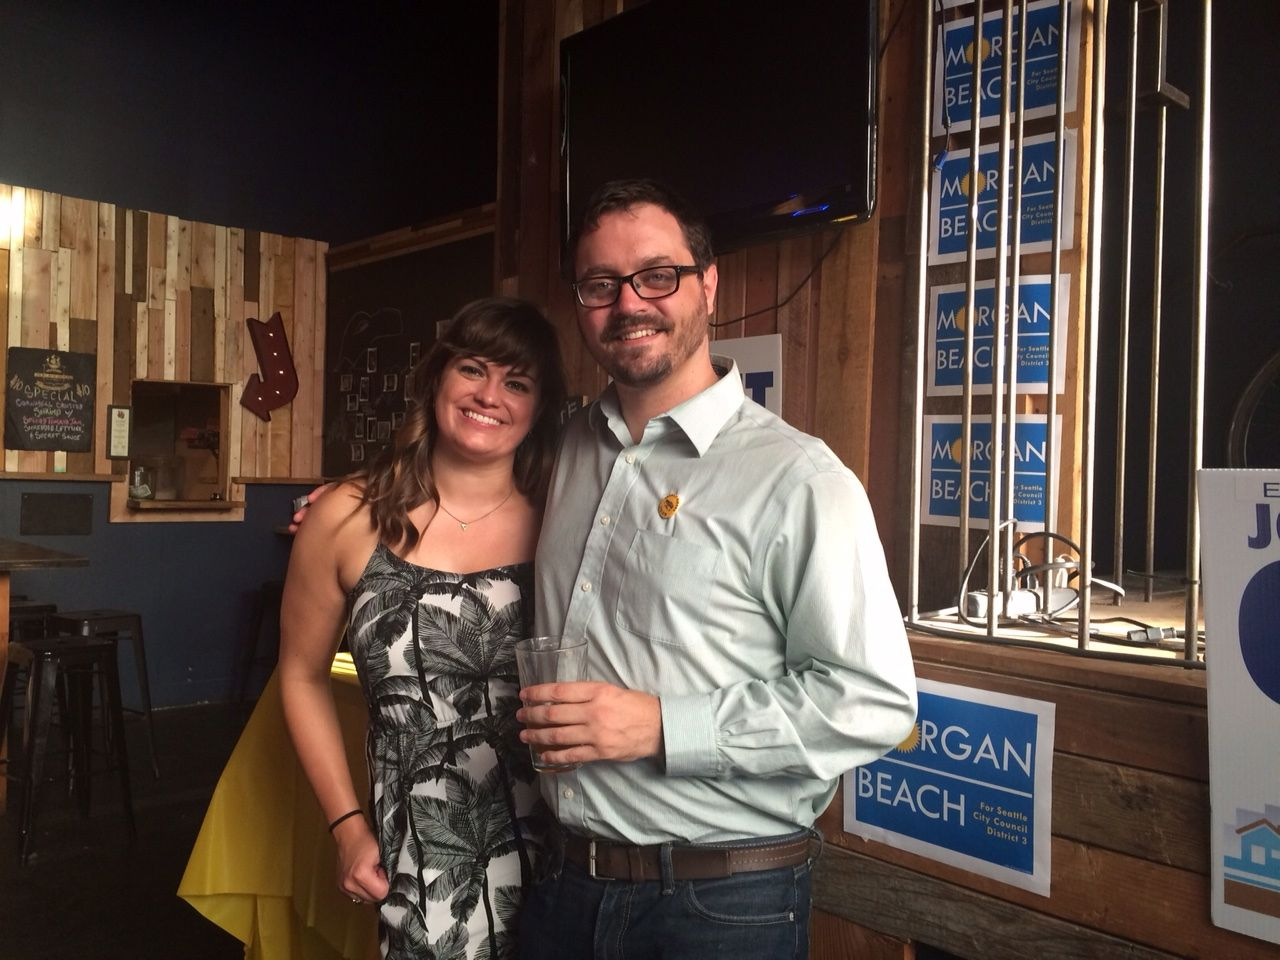 District 3 candidate Morgan Beach with citywide candidate Jon Grant.